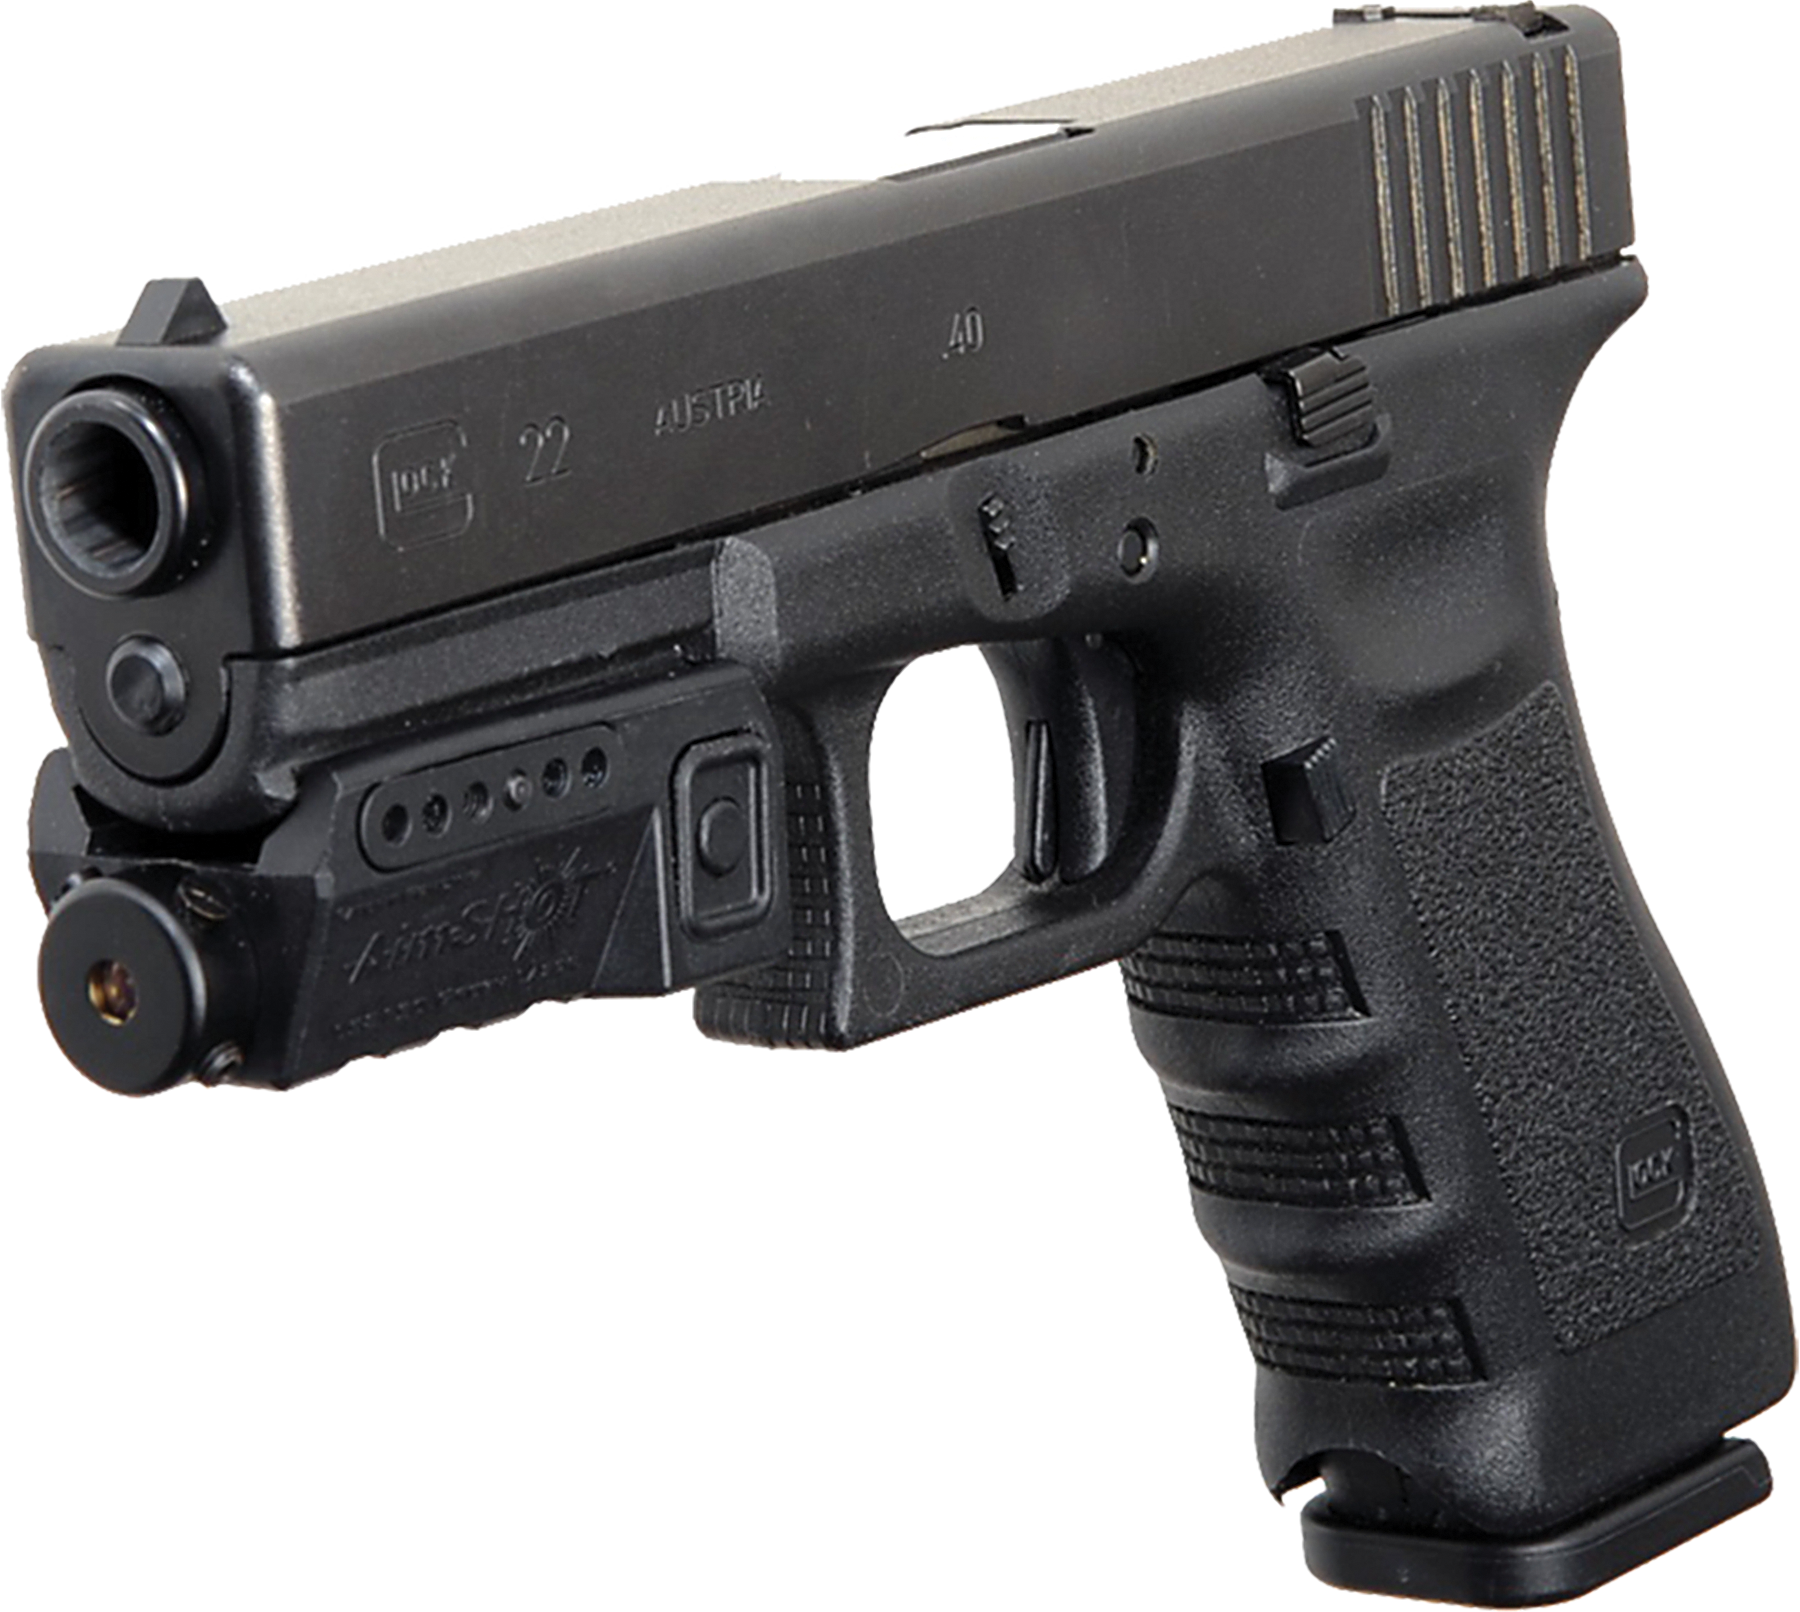 Aimshot KT8150 Compact Pistol Green Laser w/Rail Integrated Rail Mount